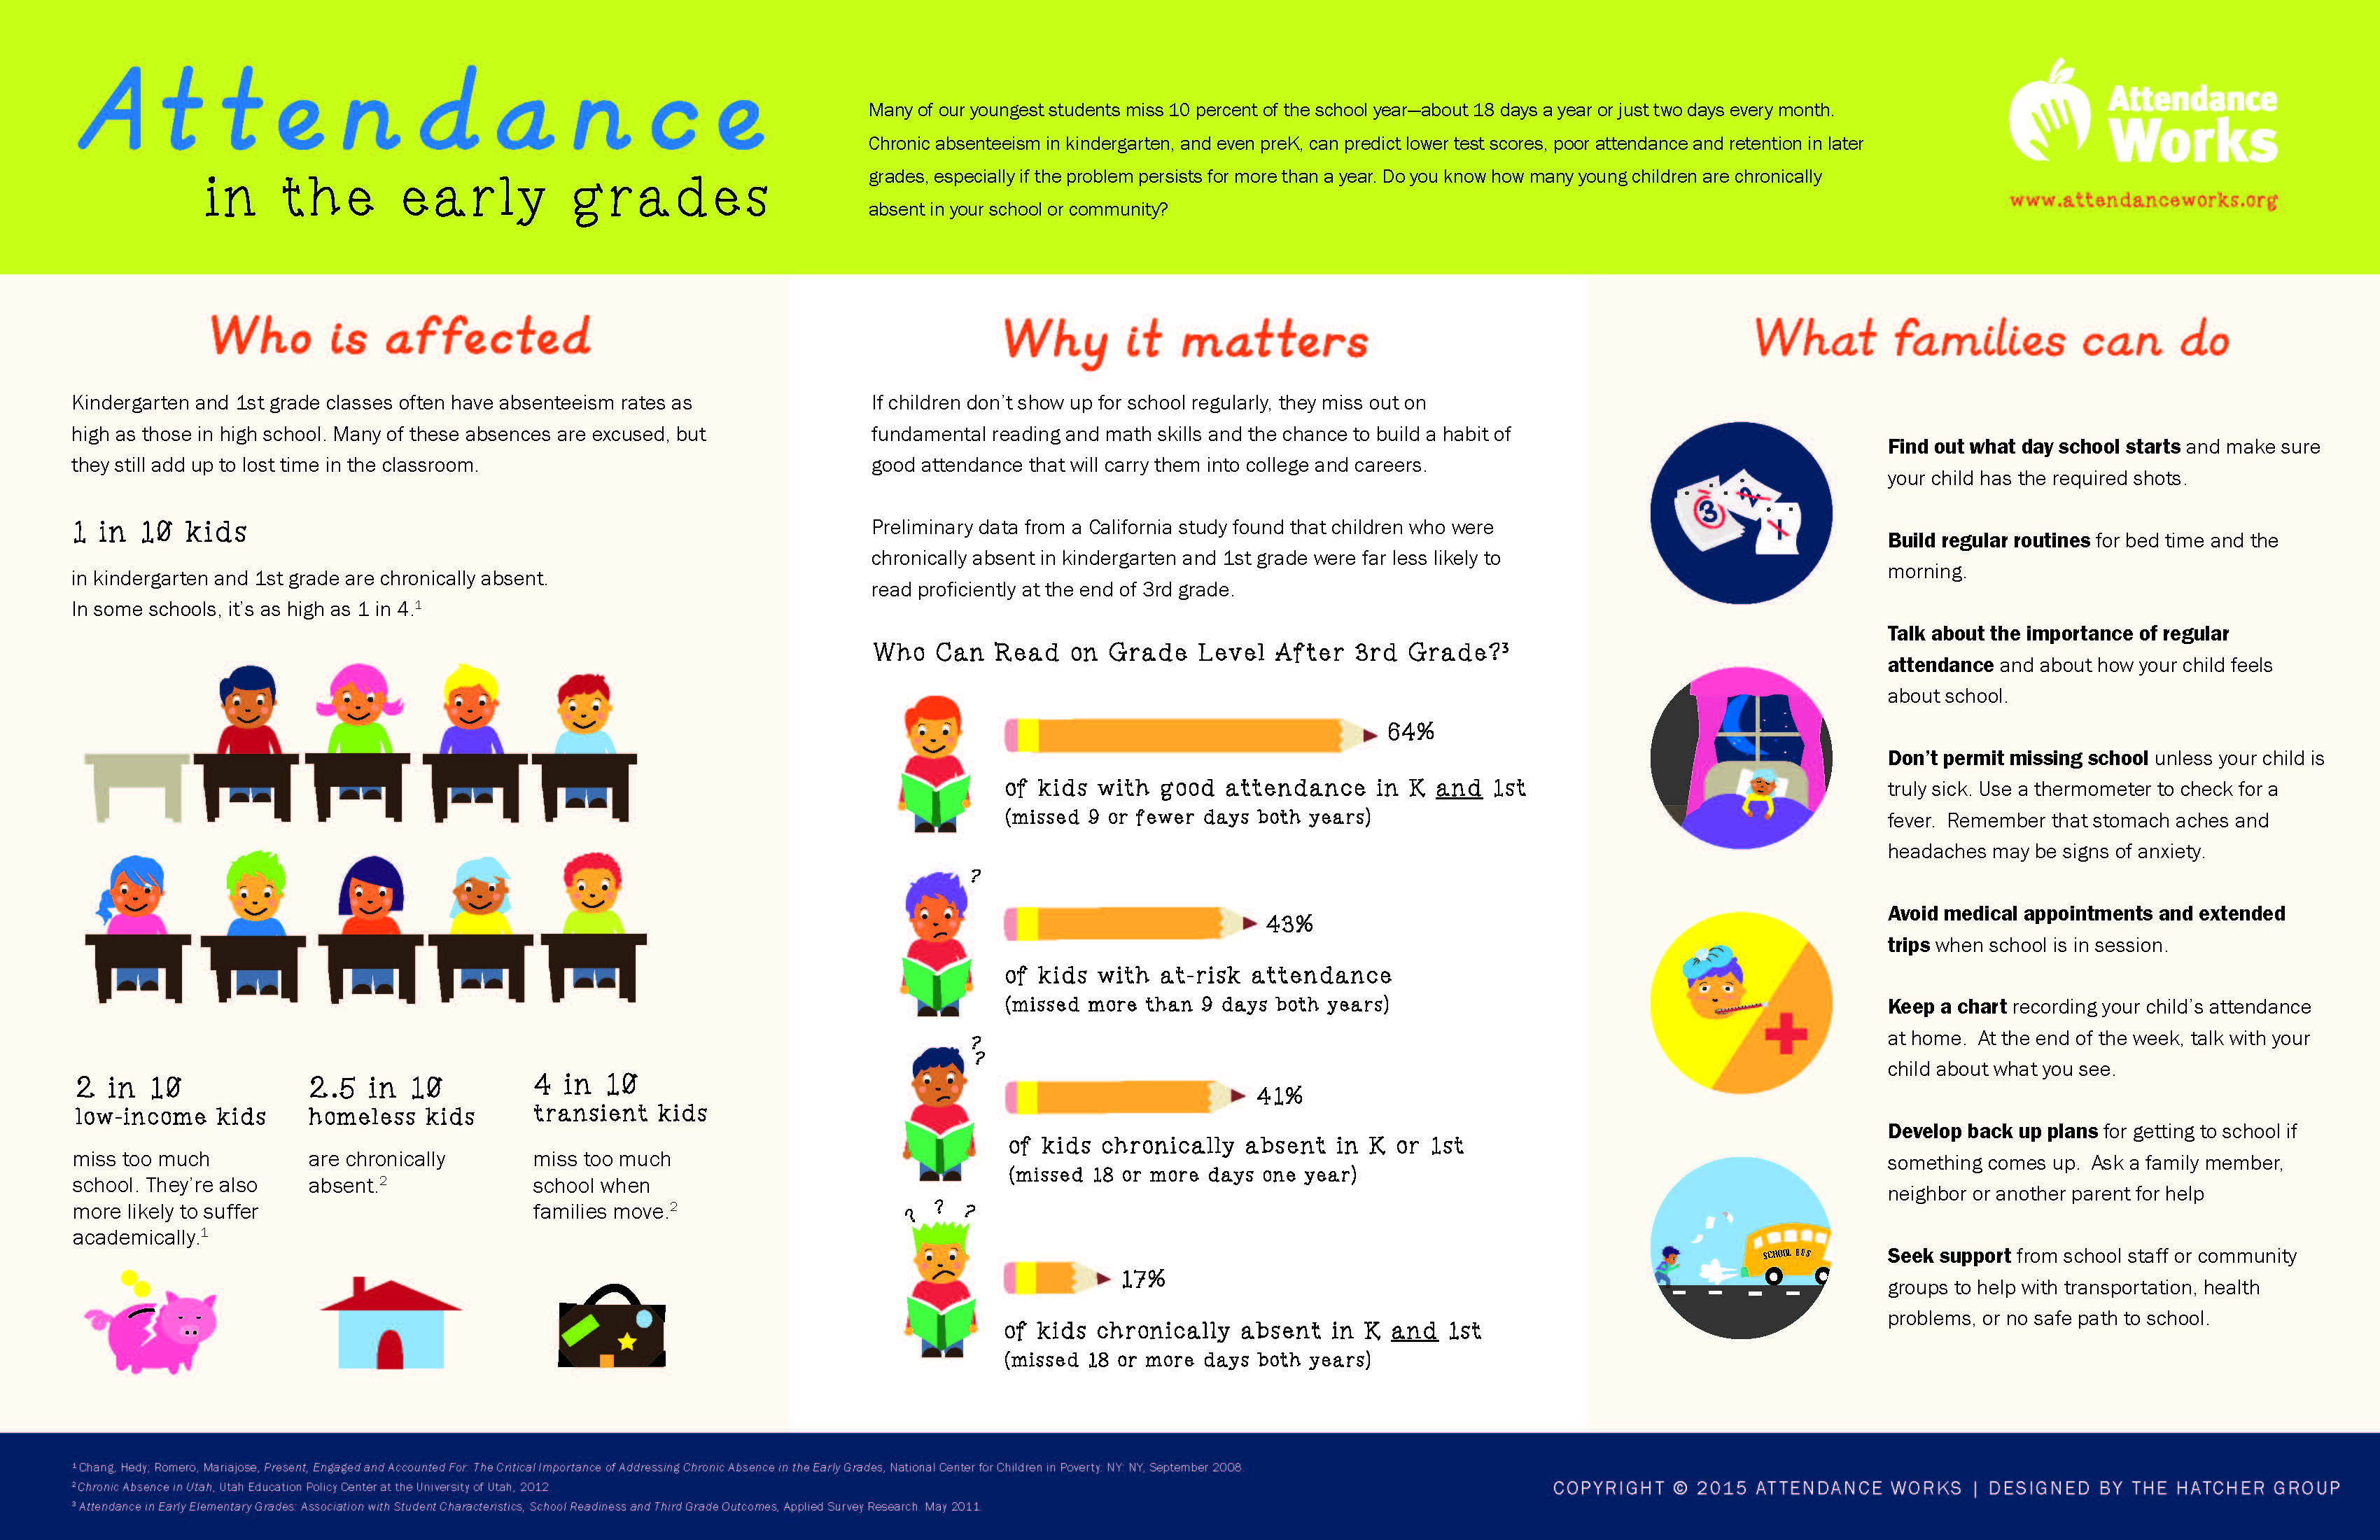 Attendance in the early grades infographic, .pdf link below